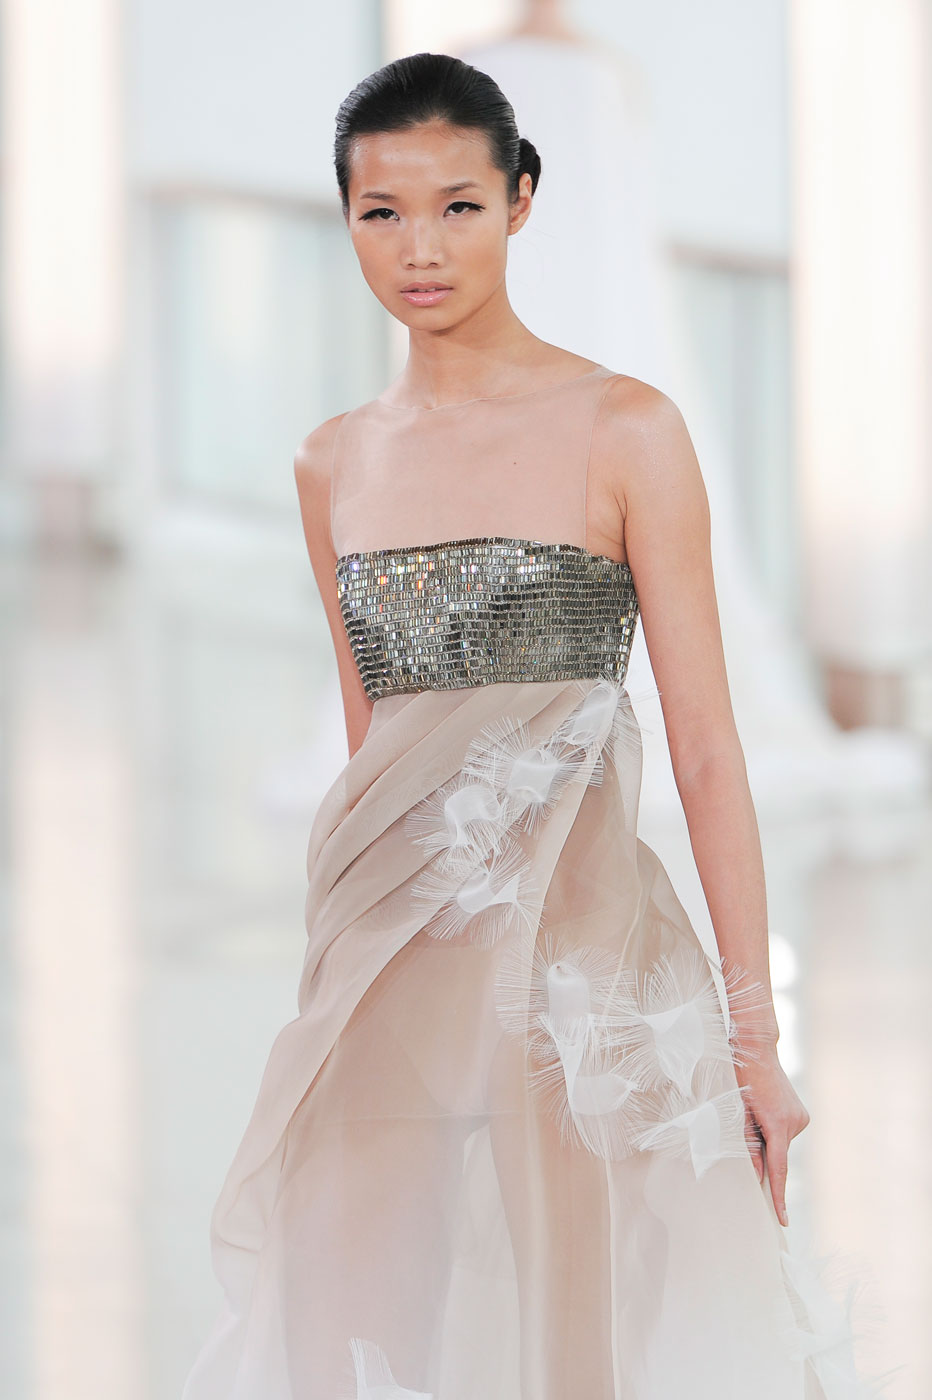 stephane-rolland-fashion-runway-show-haute-couture-paris-spring-2015-the-impression-24